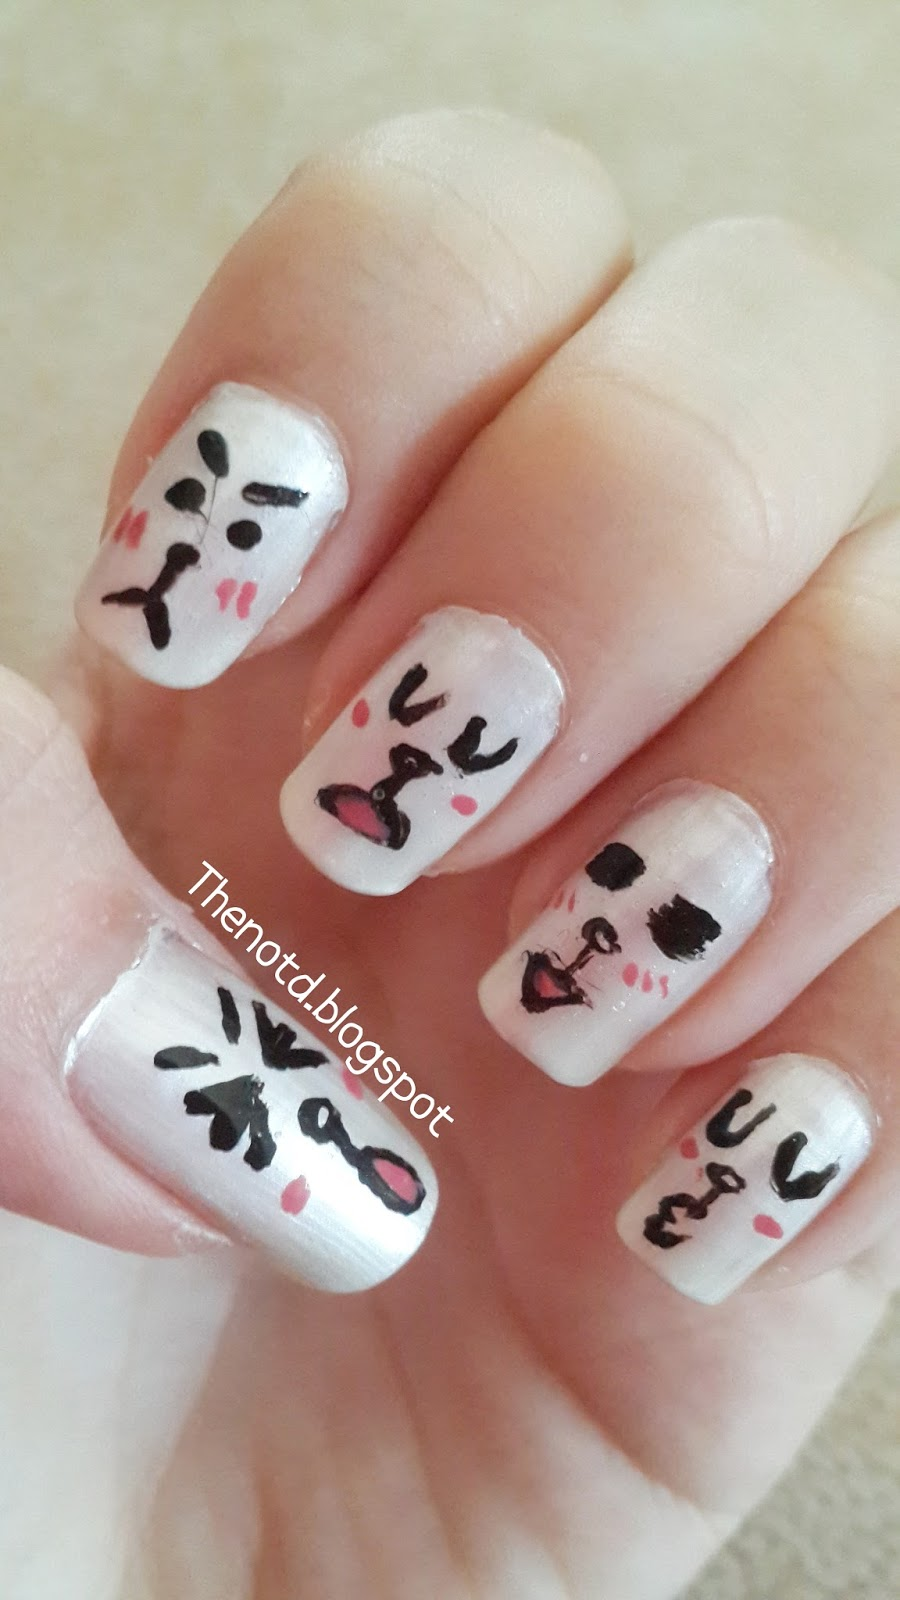 Cony nail art my best friend last month so i was thinking about this cute rabbit and finally draw on my nails u can look conys different faces from line sticker prinsesfo Image collections